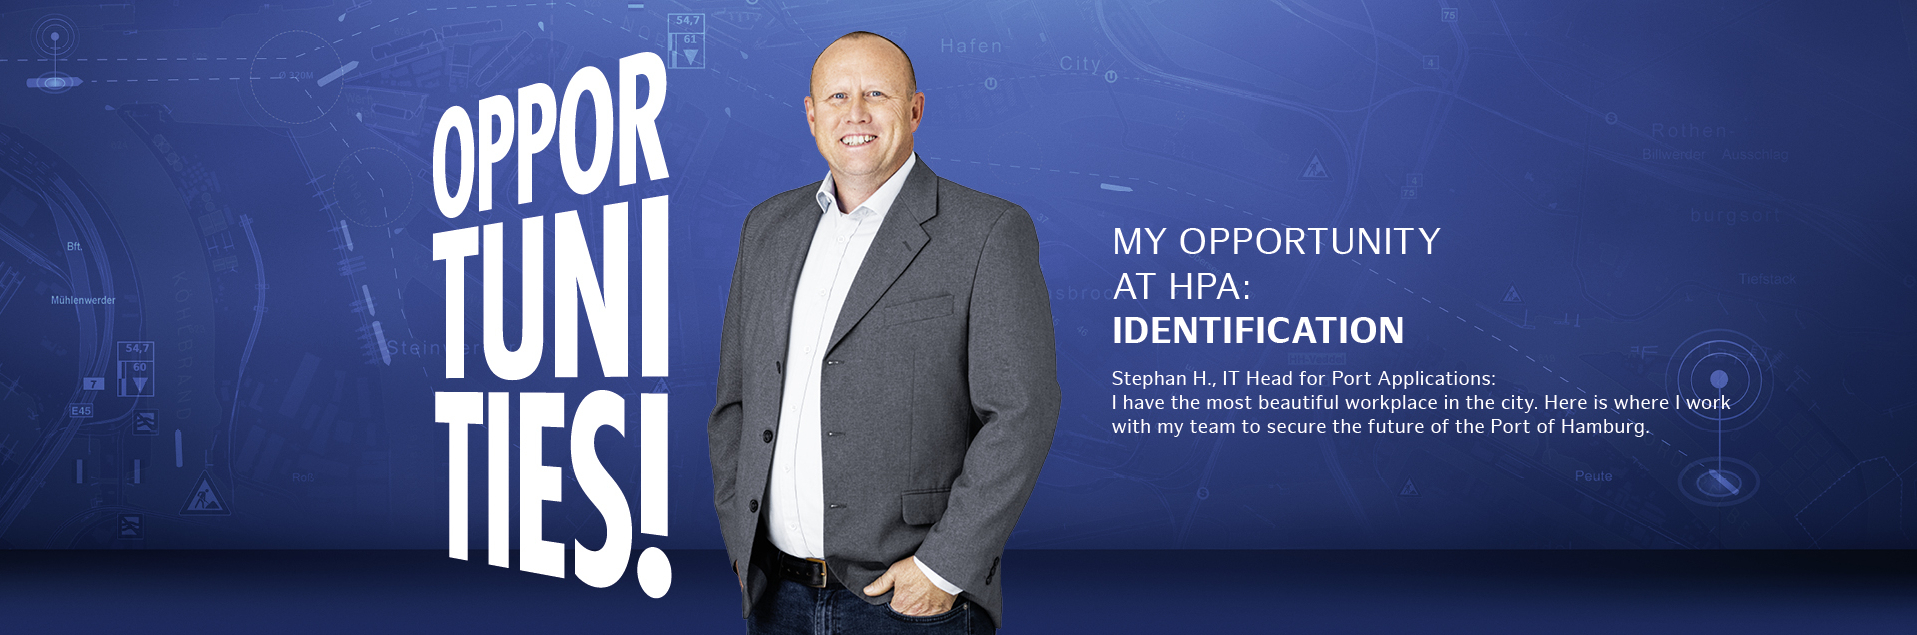 My opportunities at HPA: Identification